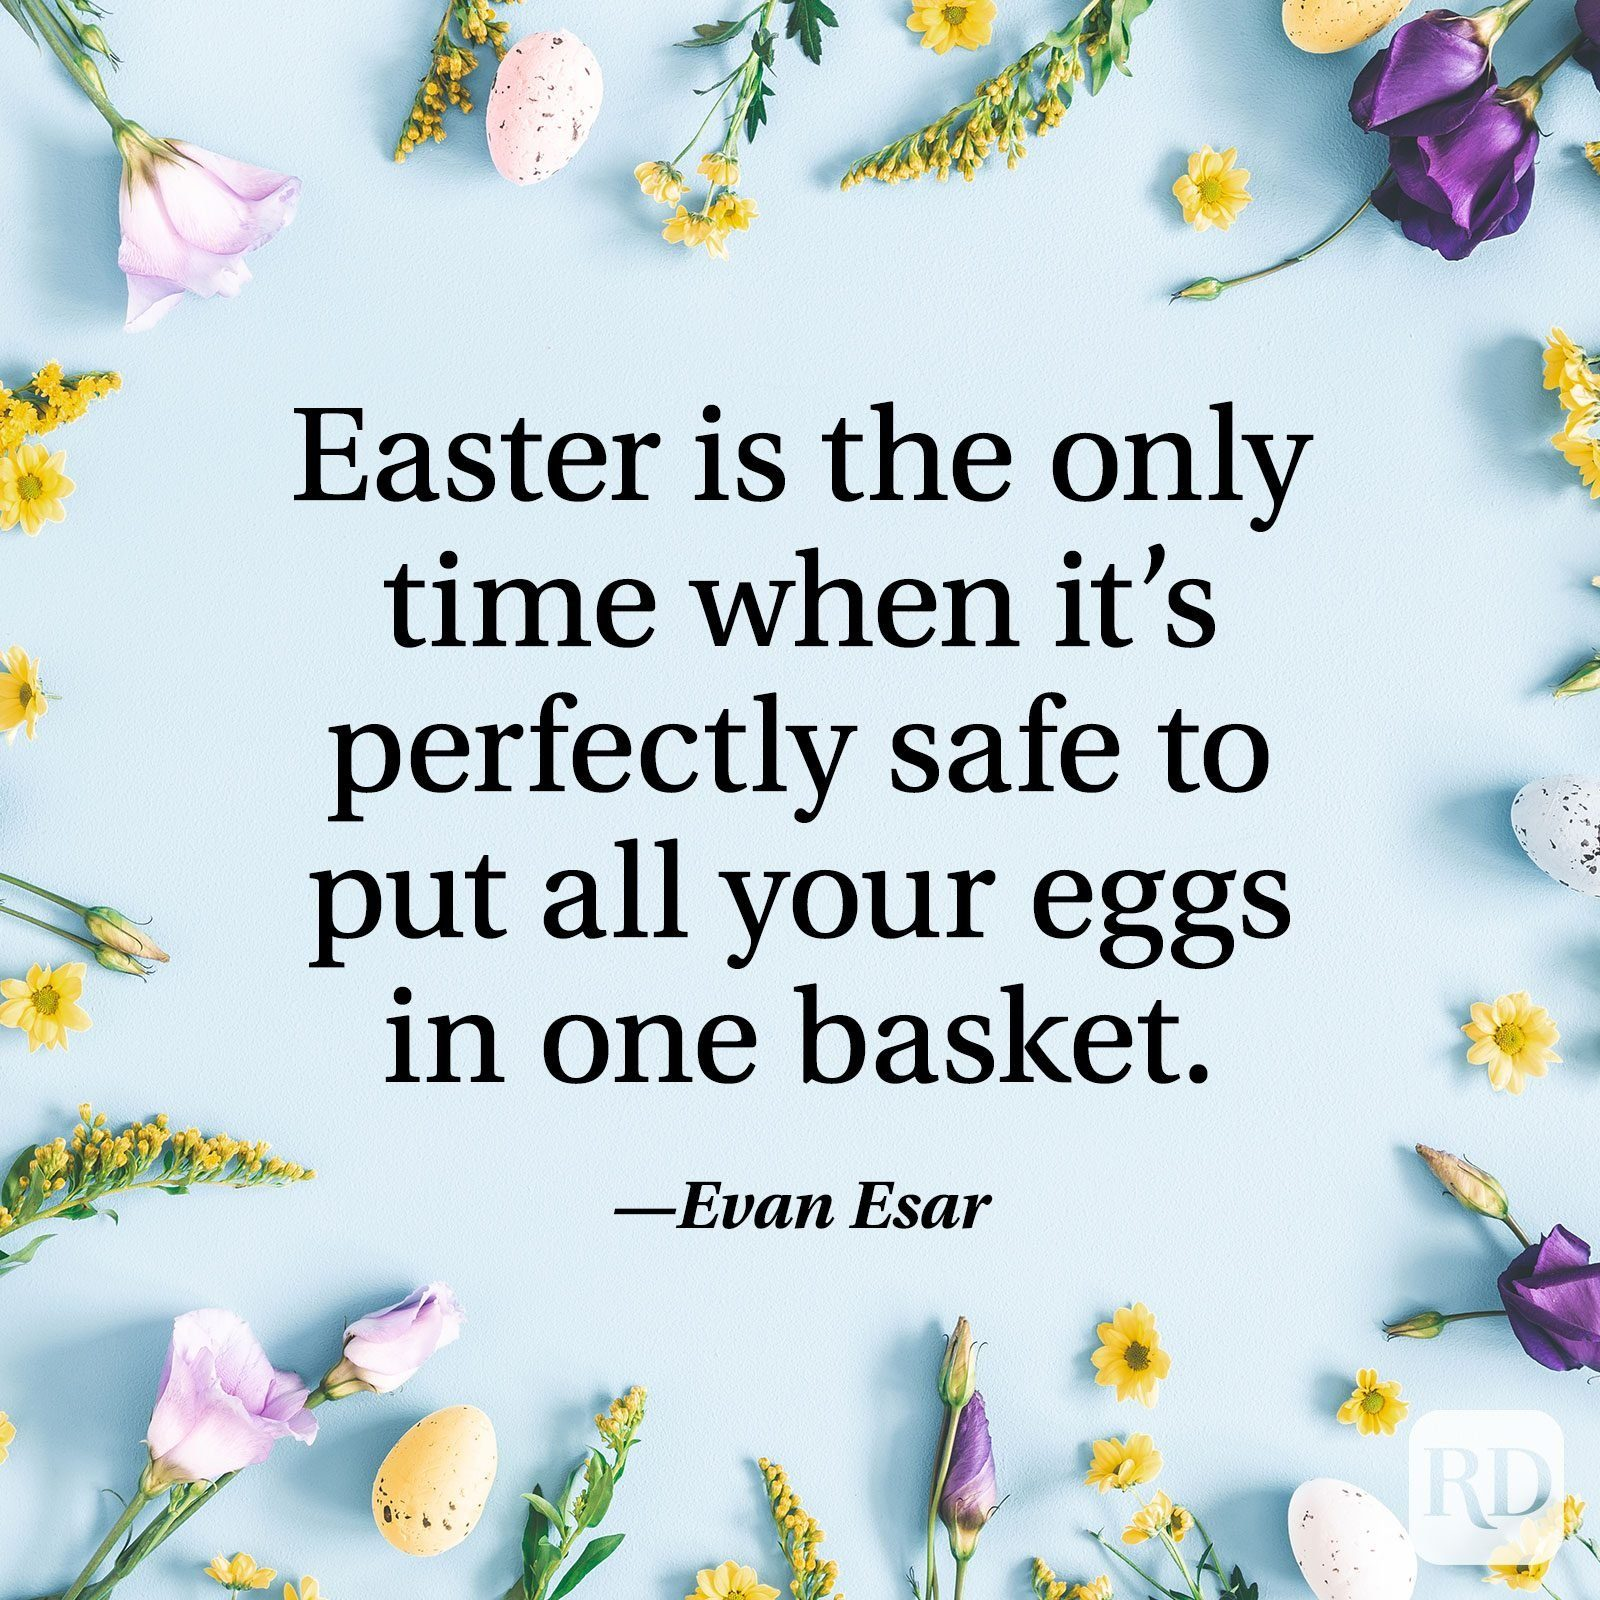 """""""Easter is the only time when it's perfectly safe to put all your eggs in one basket."""" — Evan Esar"""